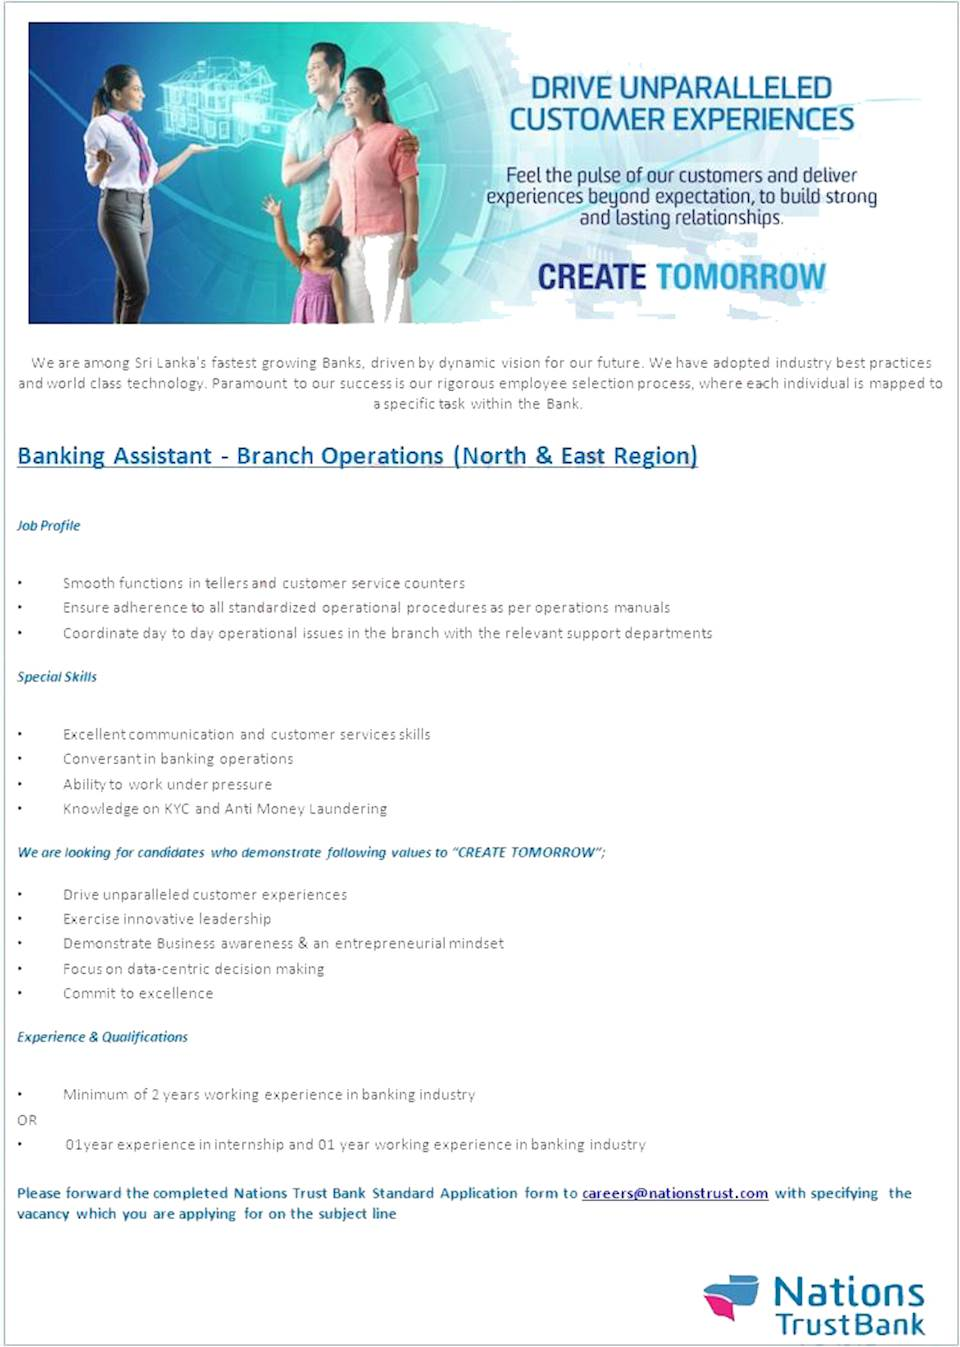 Banking Assistant - Branch Operations (North & East Region)